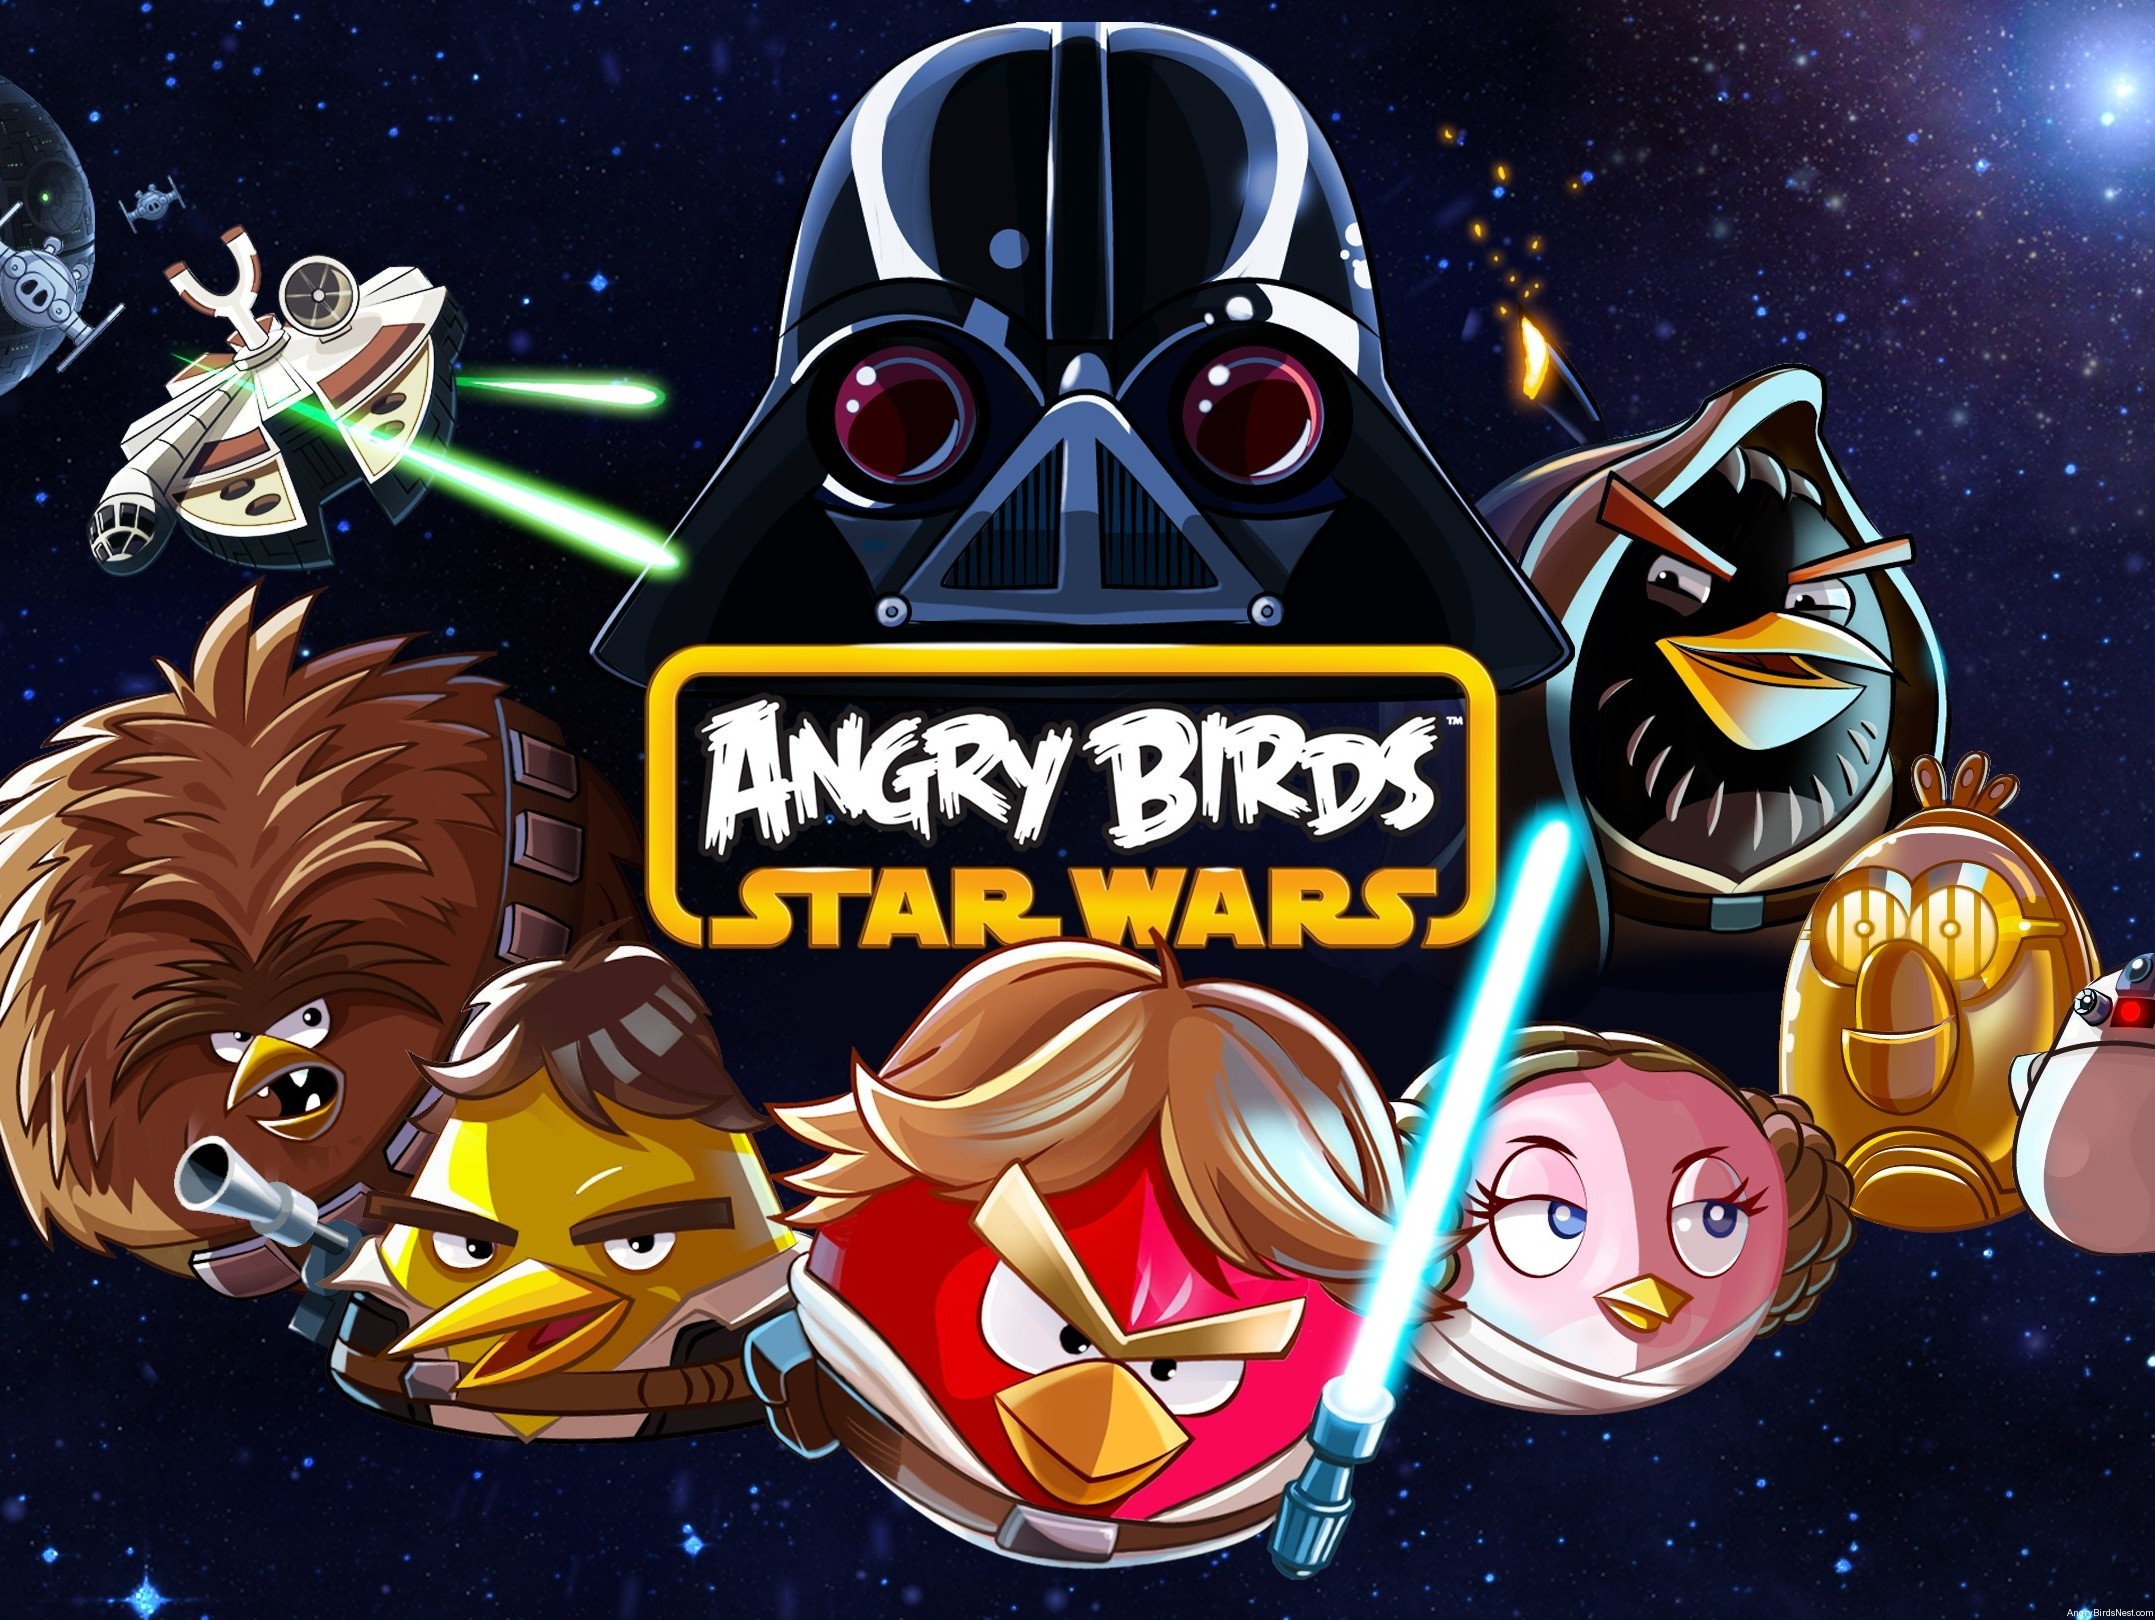 angry birds star wars images angry birds star wars wallpaper hd wallpaper and background photos